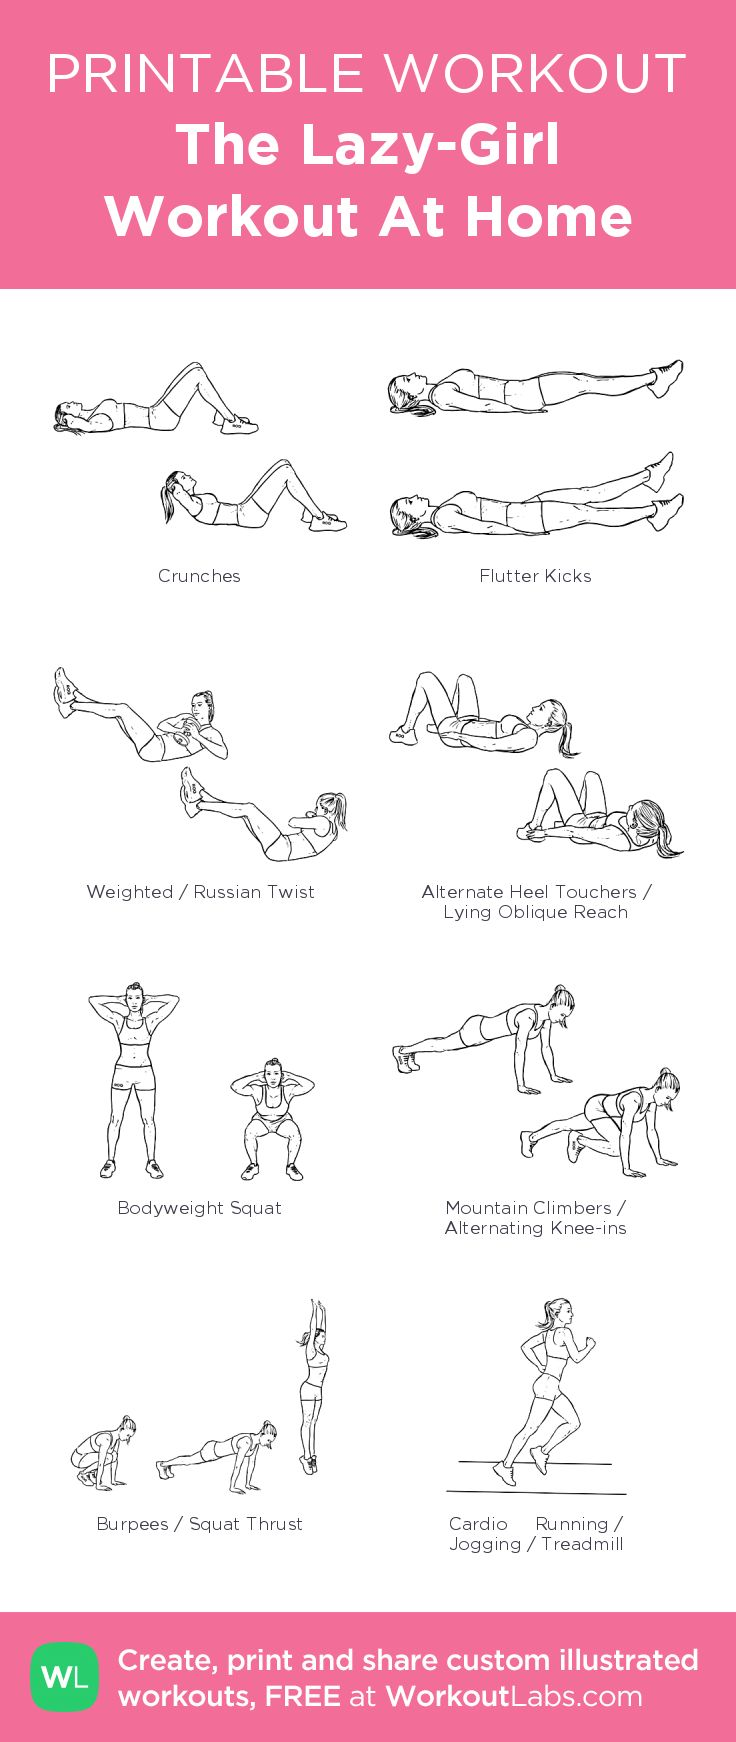 The Lazy-Girl Workout At Home: my visual workout created at WorkoutLabs.com • Click through to customize and download as a FREE PDF! #customworkout